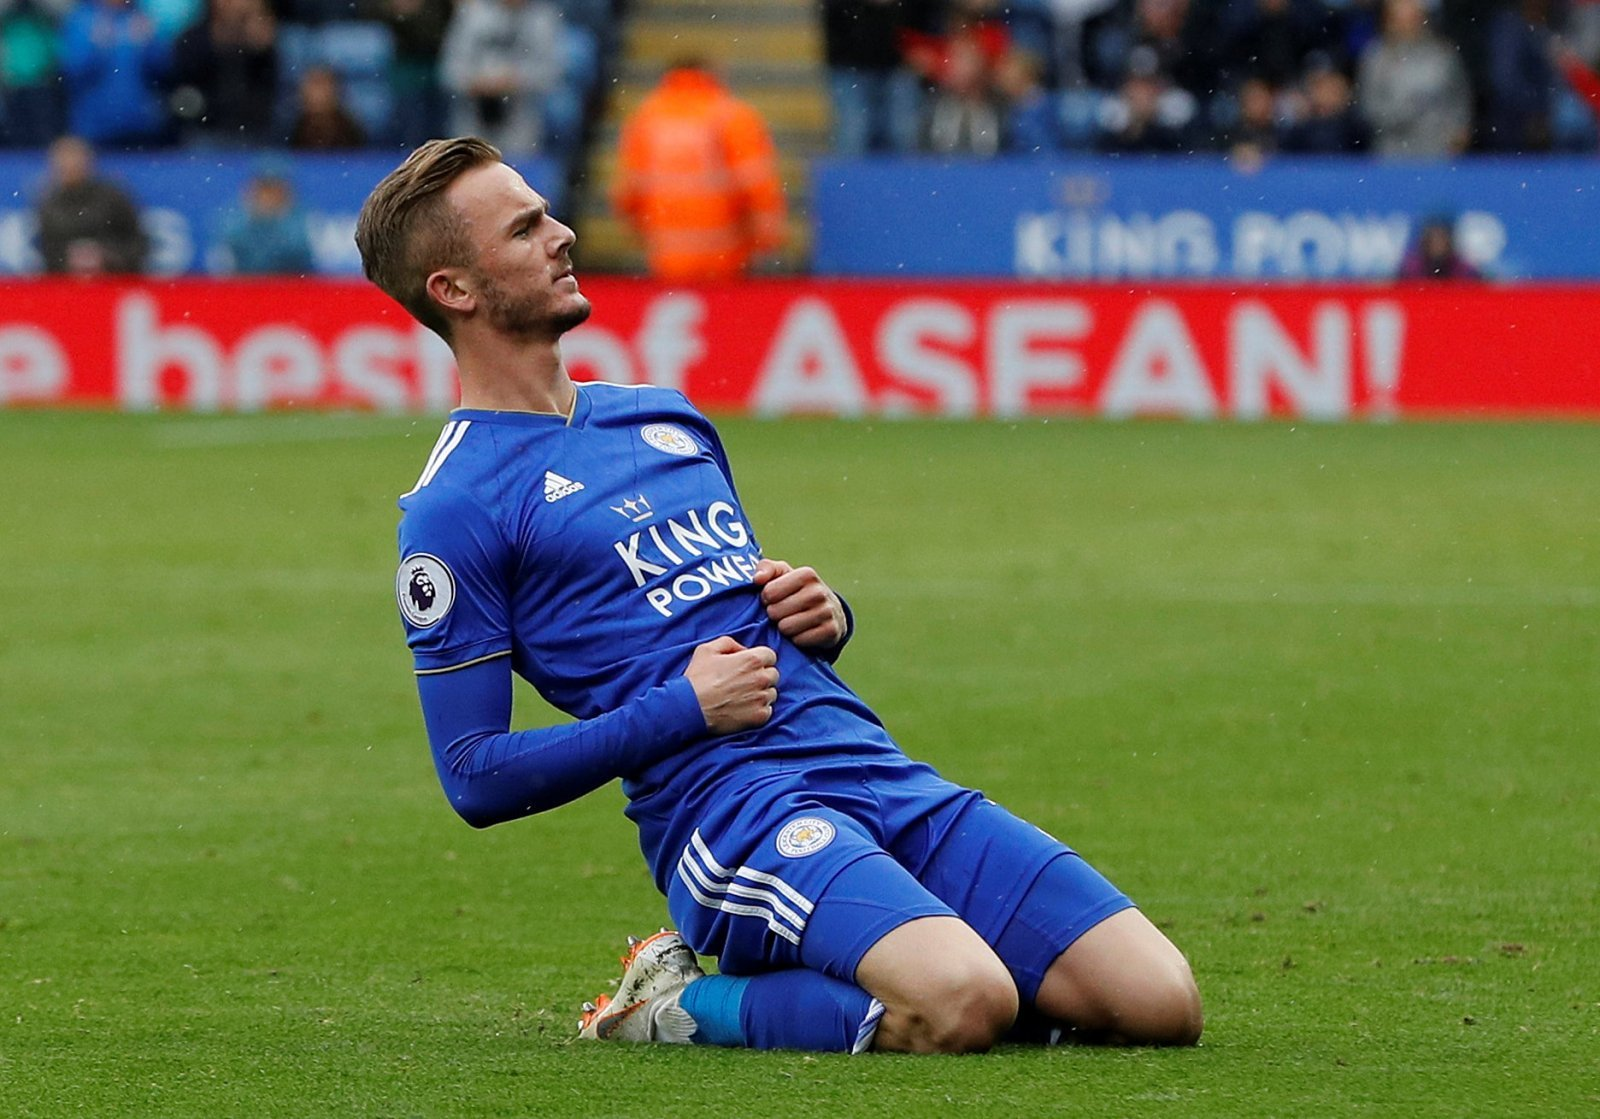 Tottenham must be ready for possible Christian Eriksen exit by landing Leicester's James Maddison